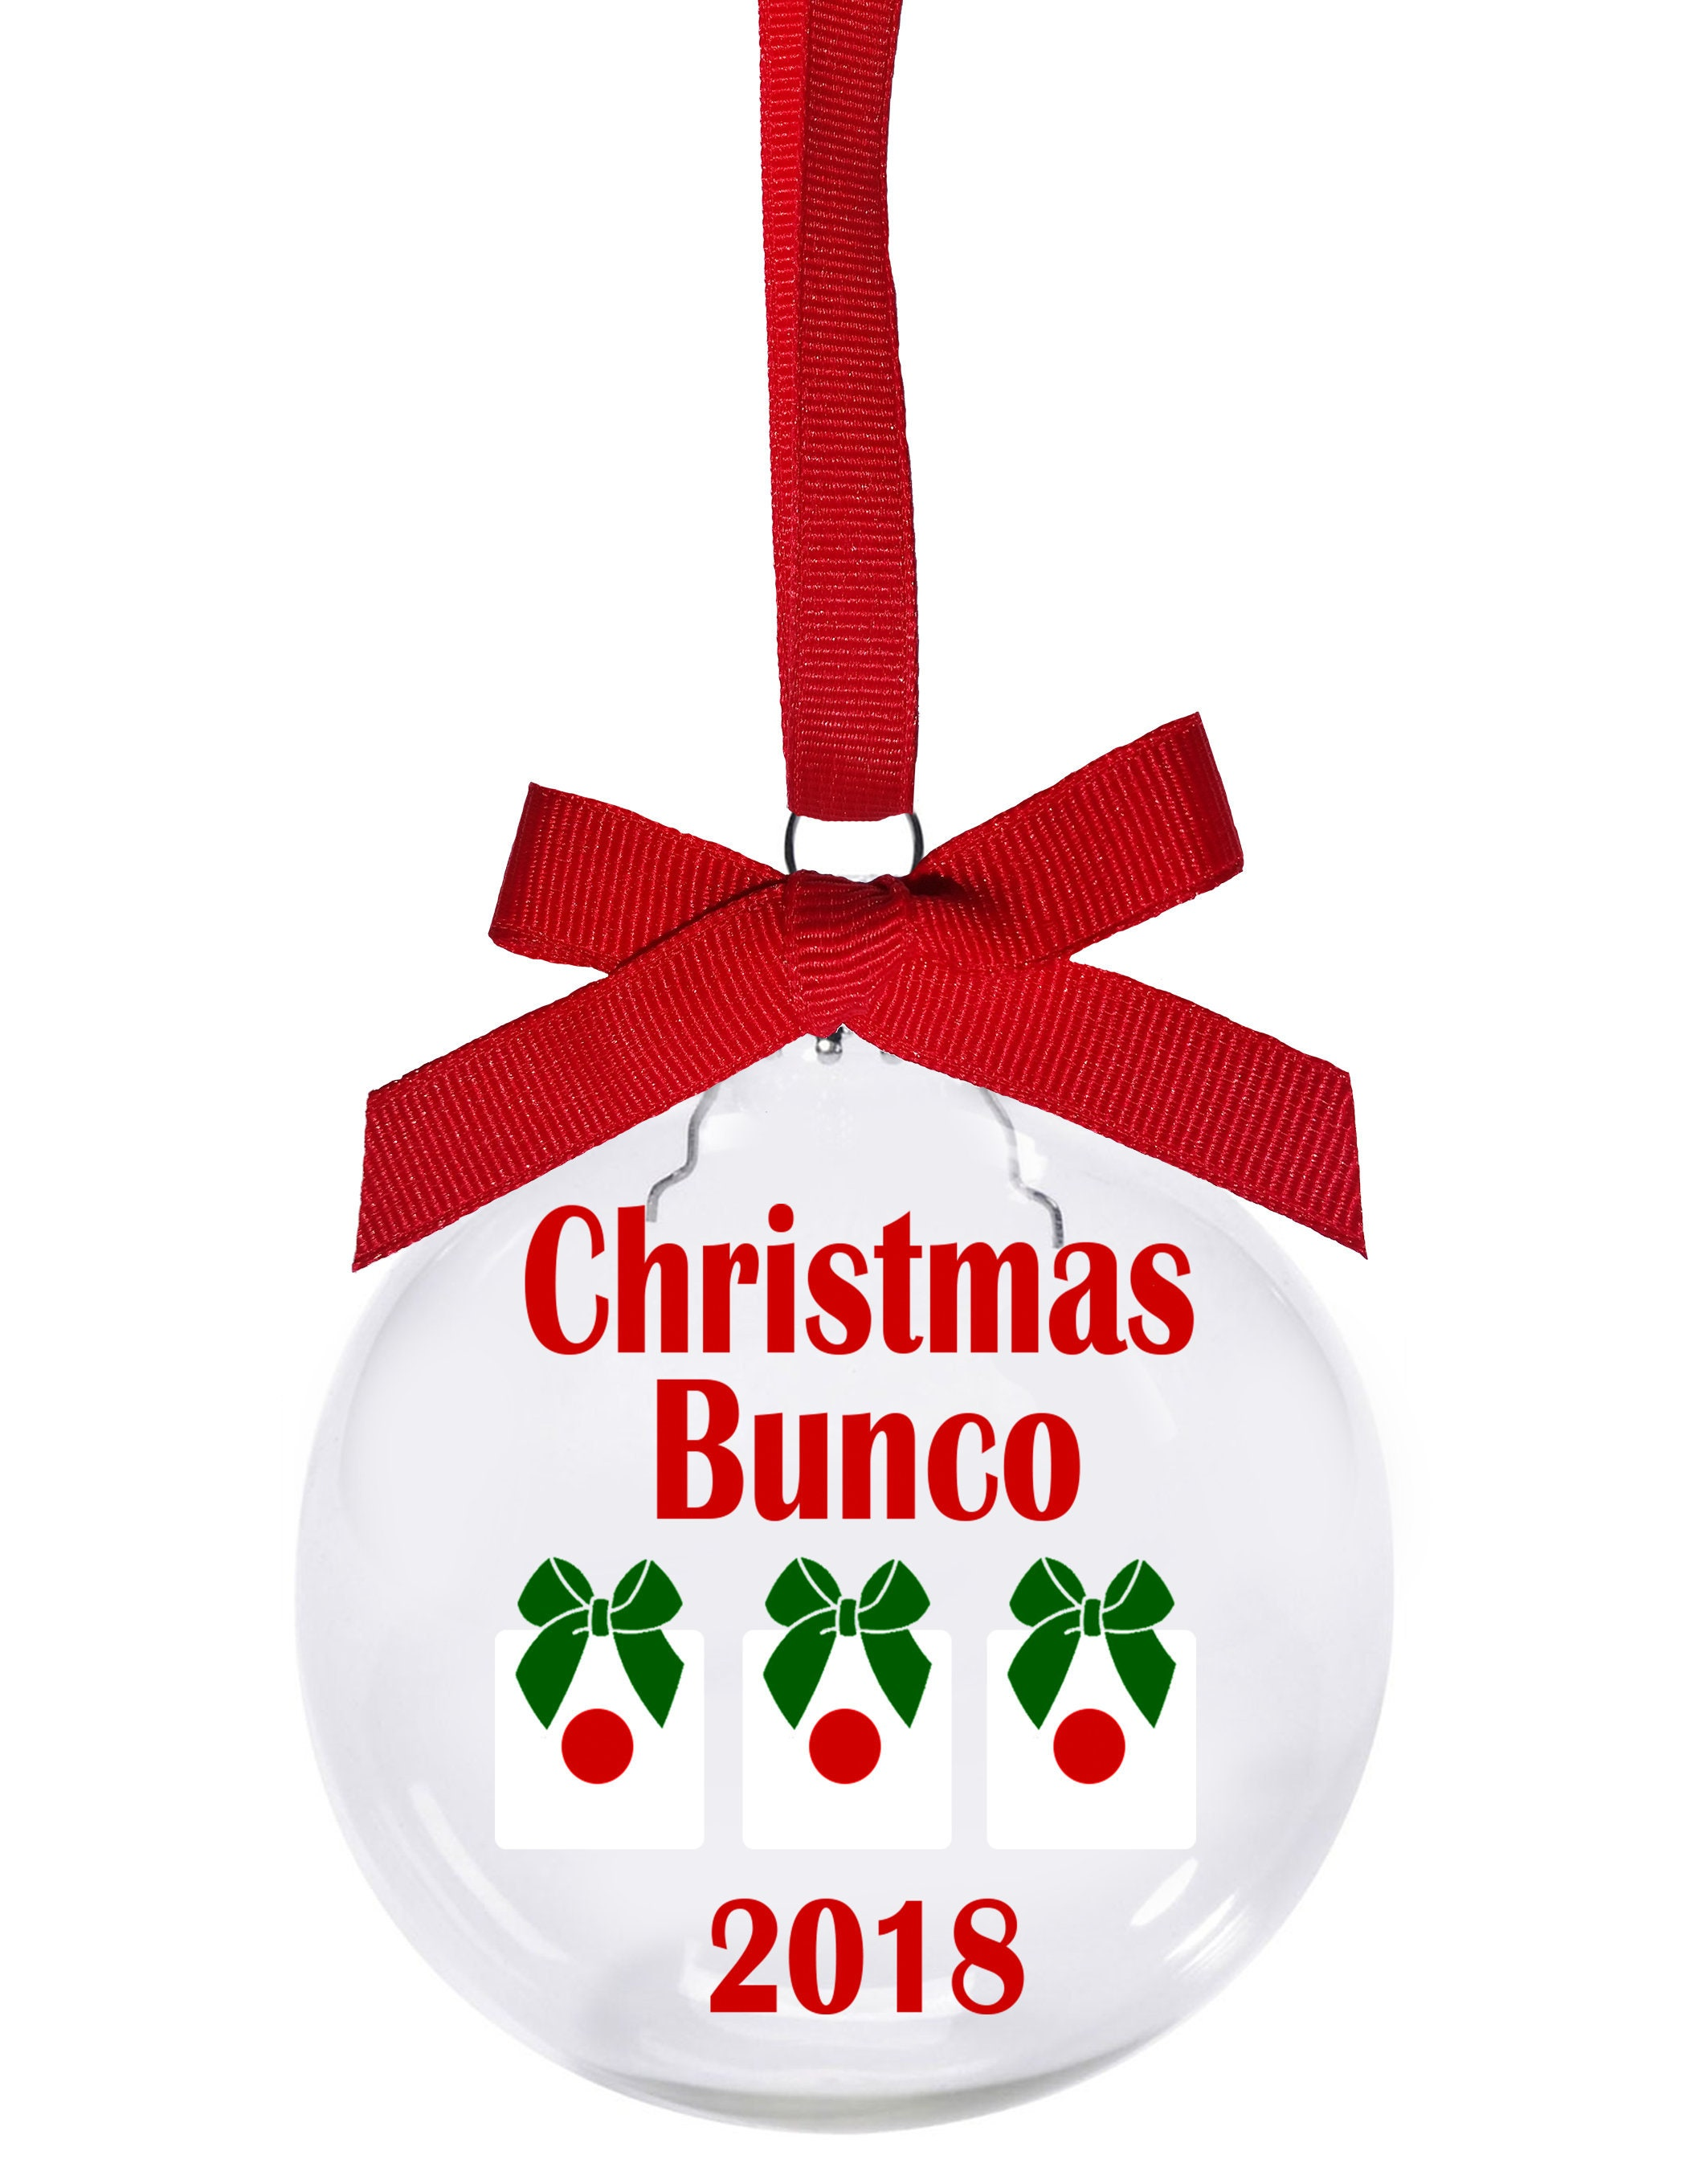 Christmas Bunco 2018 with dice presents Christmas ornament | Etsy